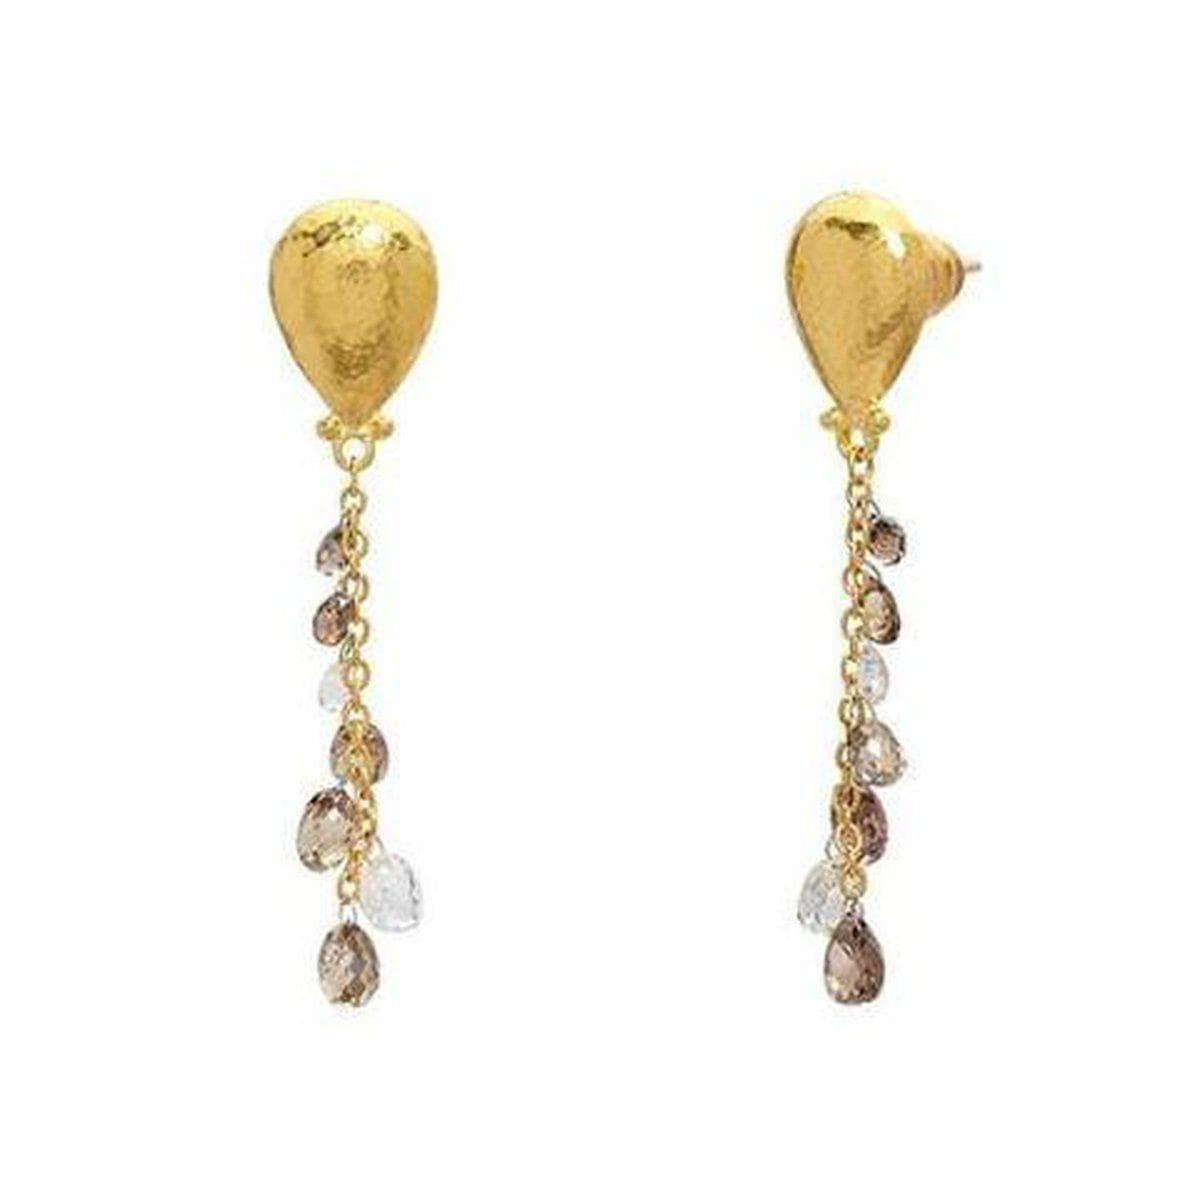 Delicate 24K Gold Diamond Earrings - E-U24099-DI-GURHAN-Renee Taylor Gallery